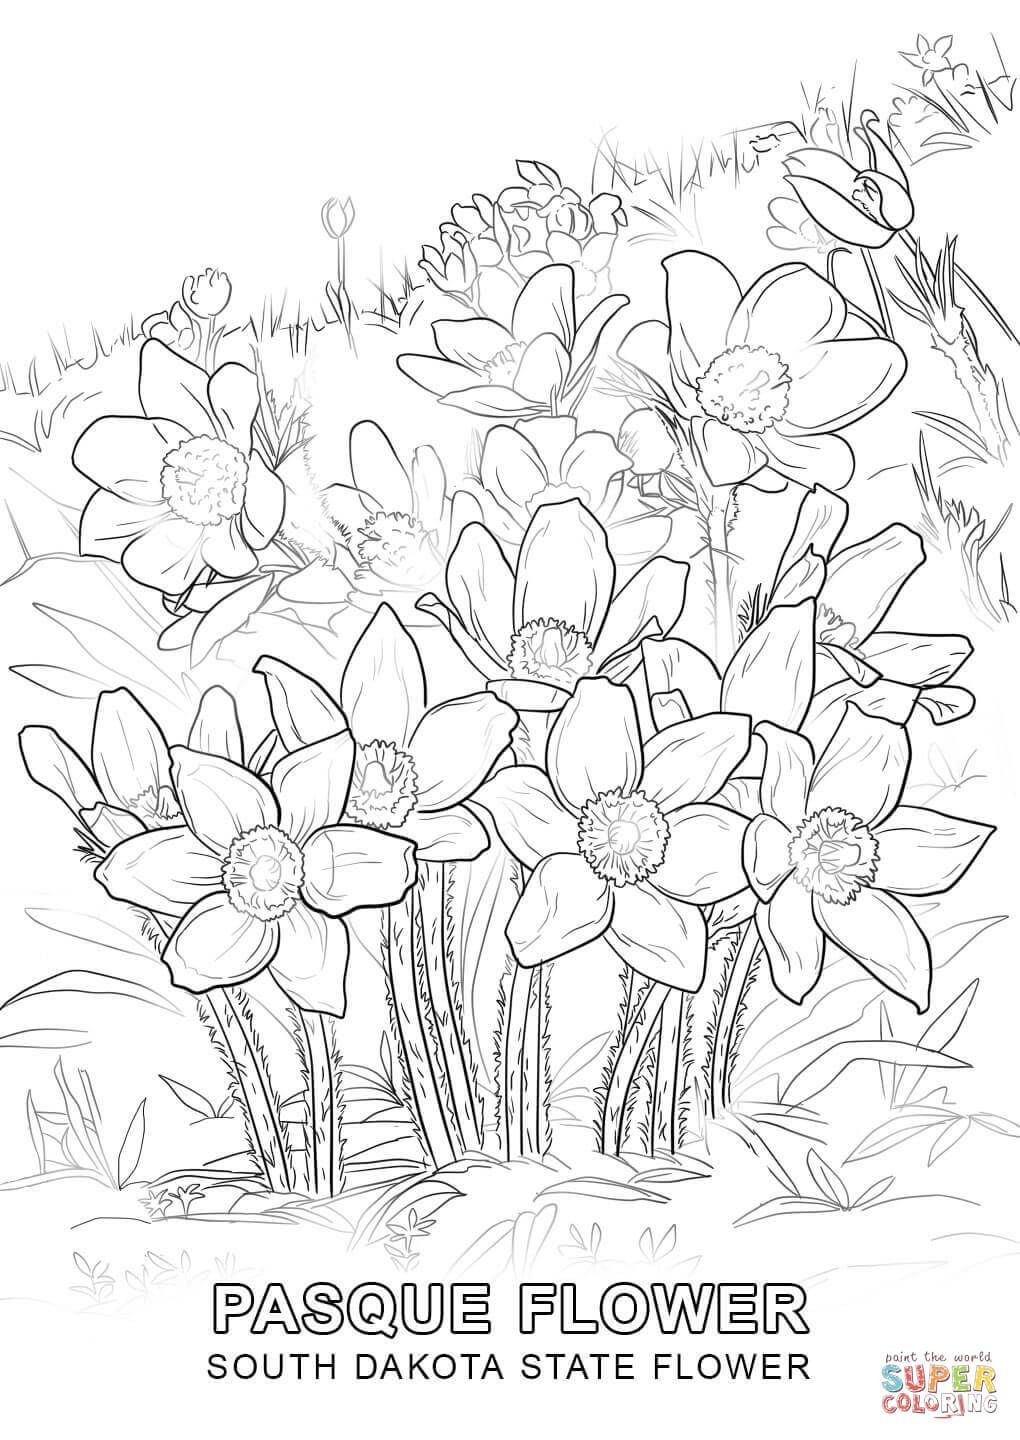 click the south dakota state flower coloring pages to view